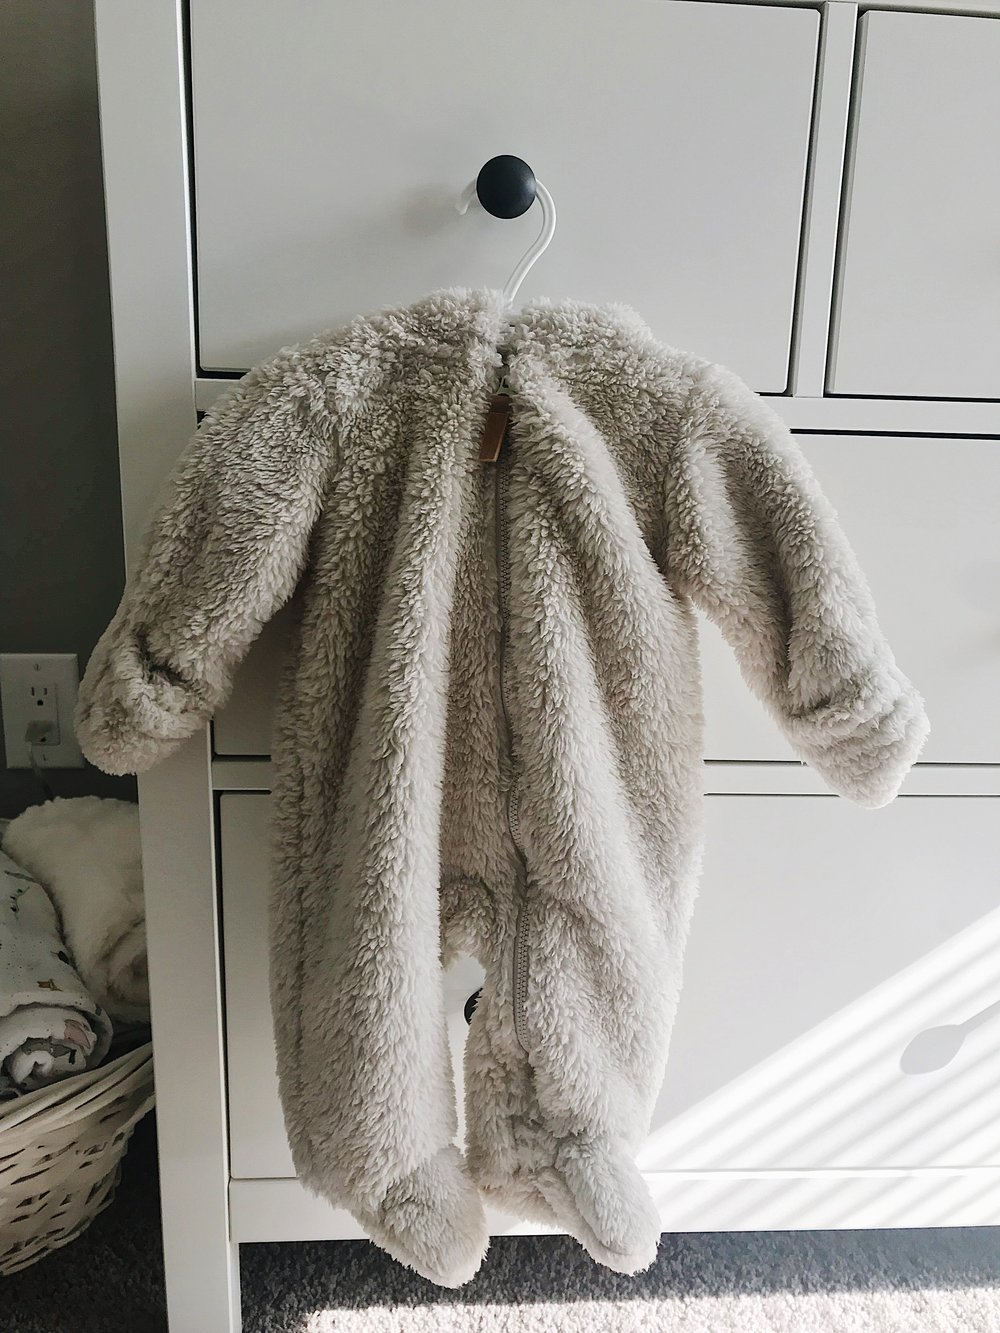 - Seven: A Warm Outfit for Coming HomeAgain, this is something that will probably only apply if you live somewhere cold. Since it has already snowed, I picked up this cute little outfit from Carter's to make sure she is nice and warm on her way out of the hospital!